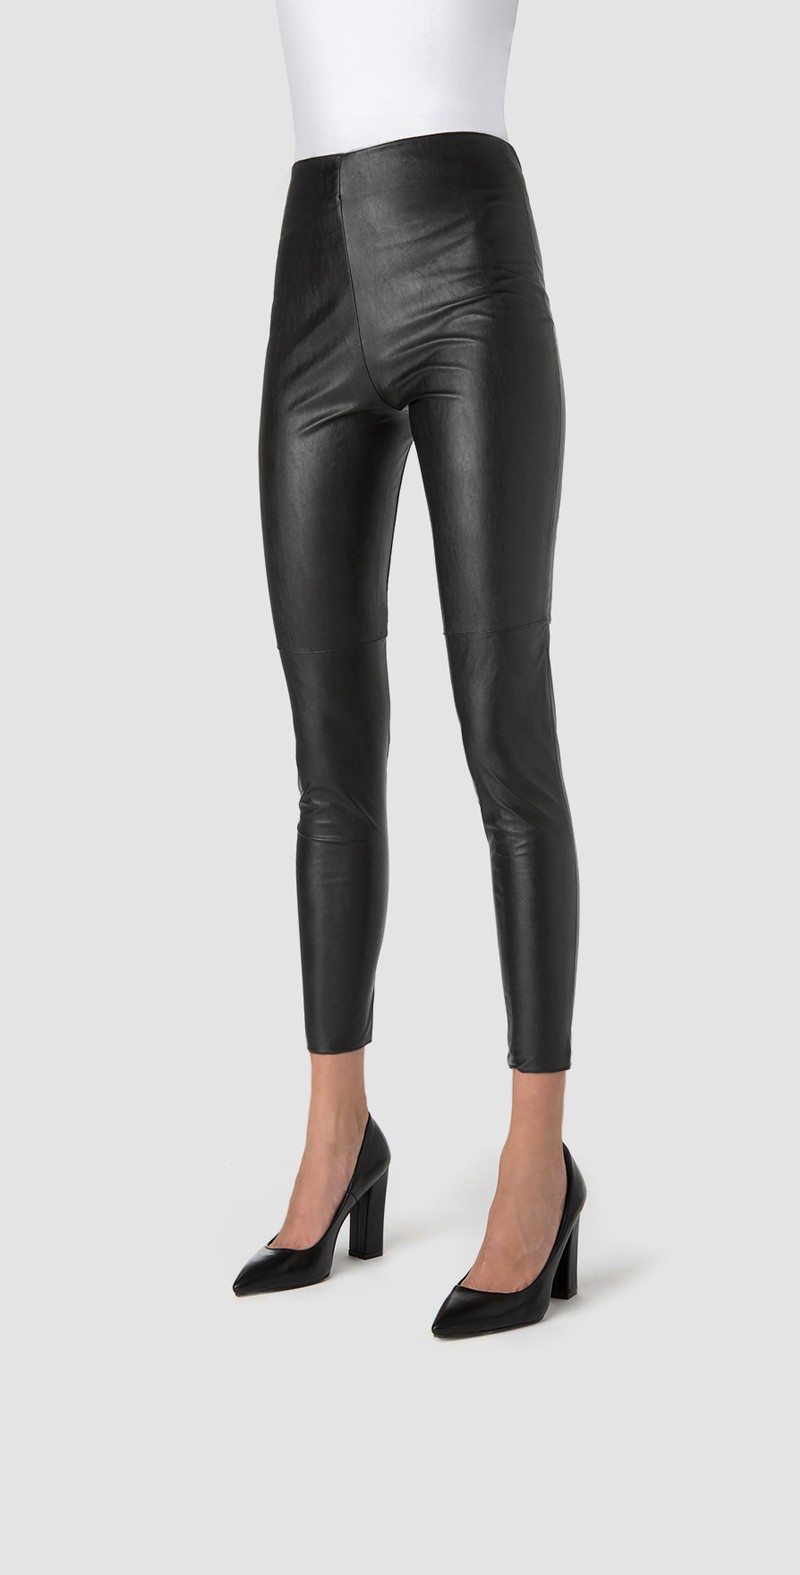 Black leggings-leather effect